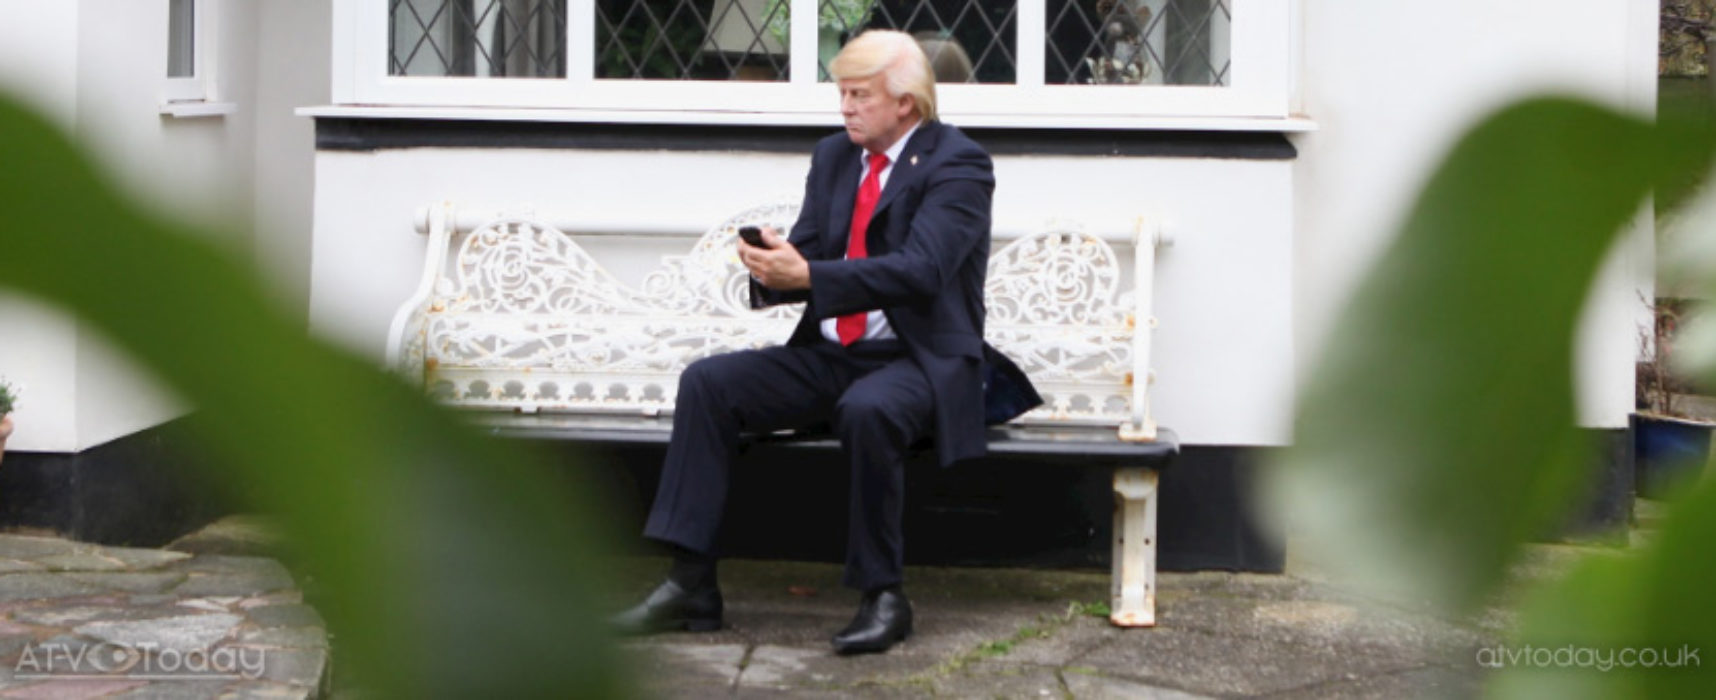 Documentary to look at Donald Trump's tweets